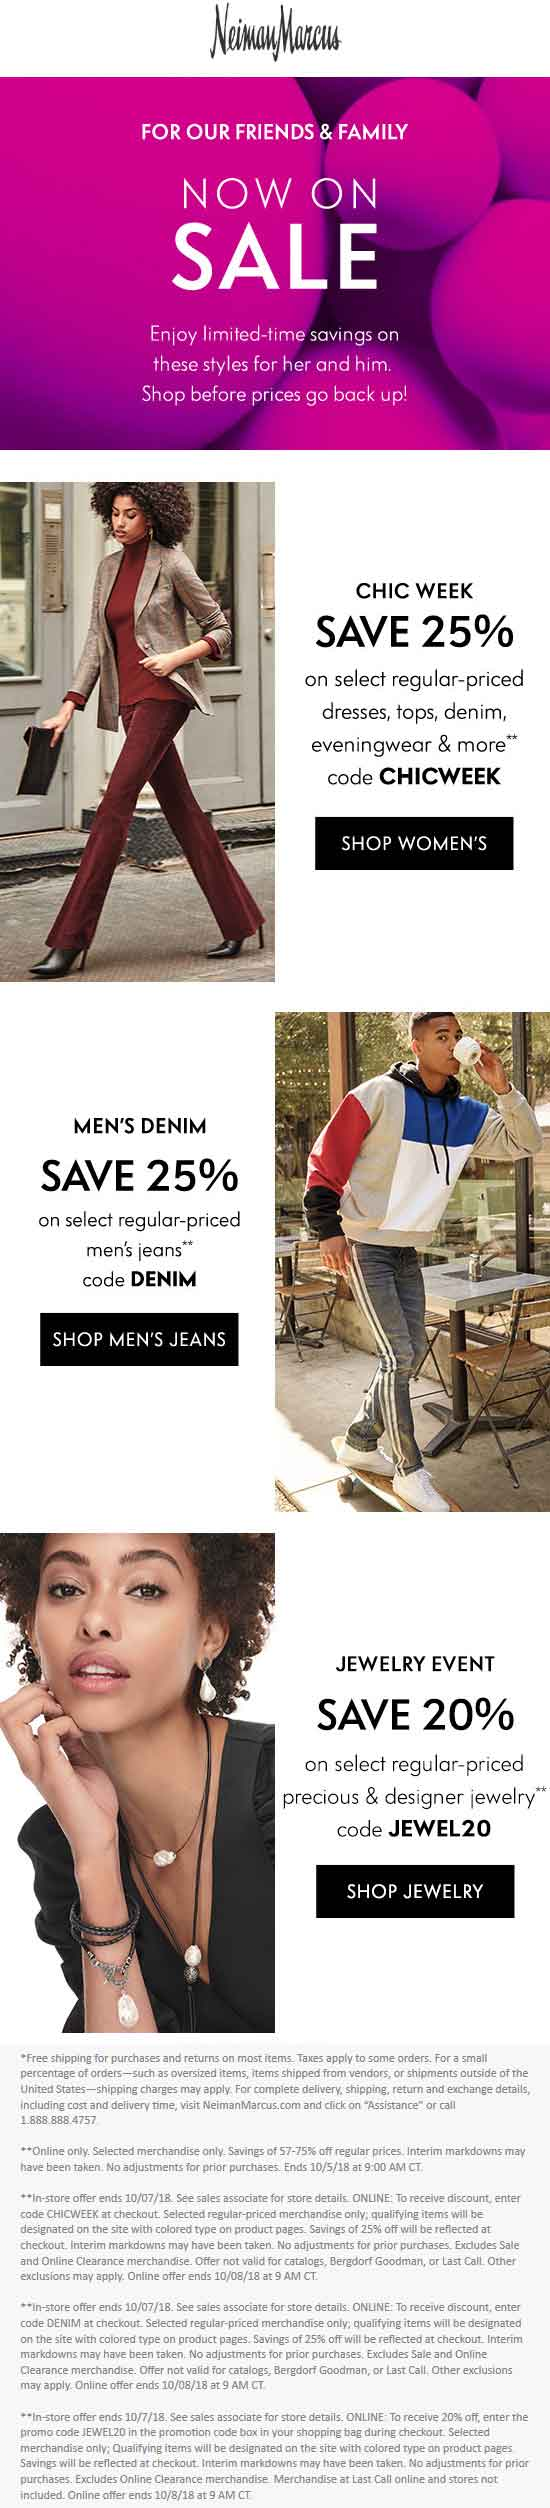 Neiman Marcus coupons & promo code for [February 2020]